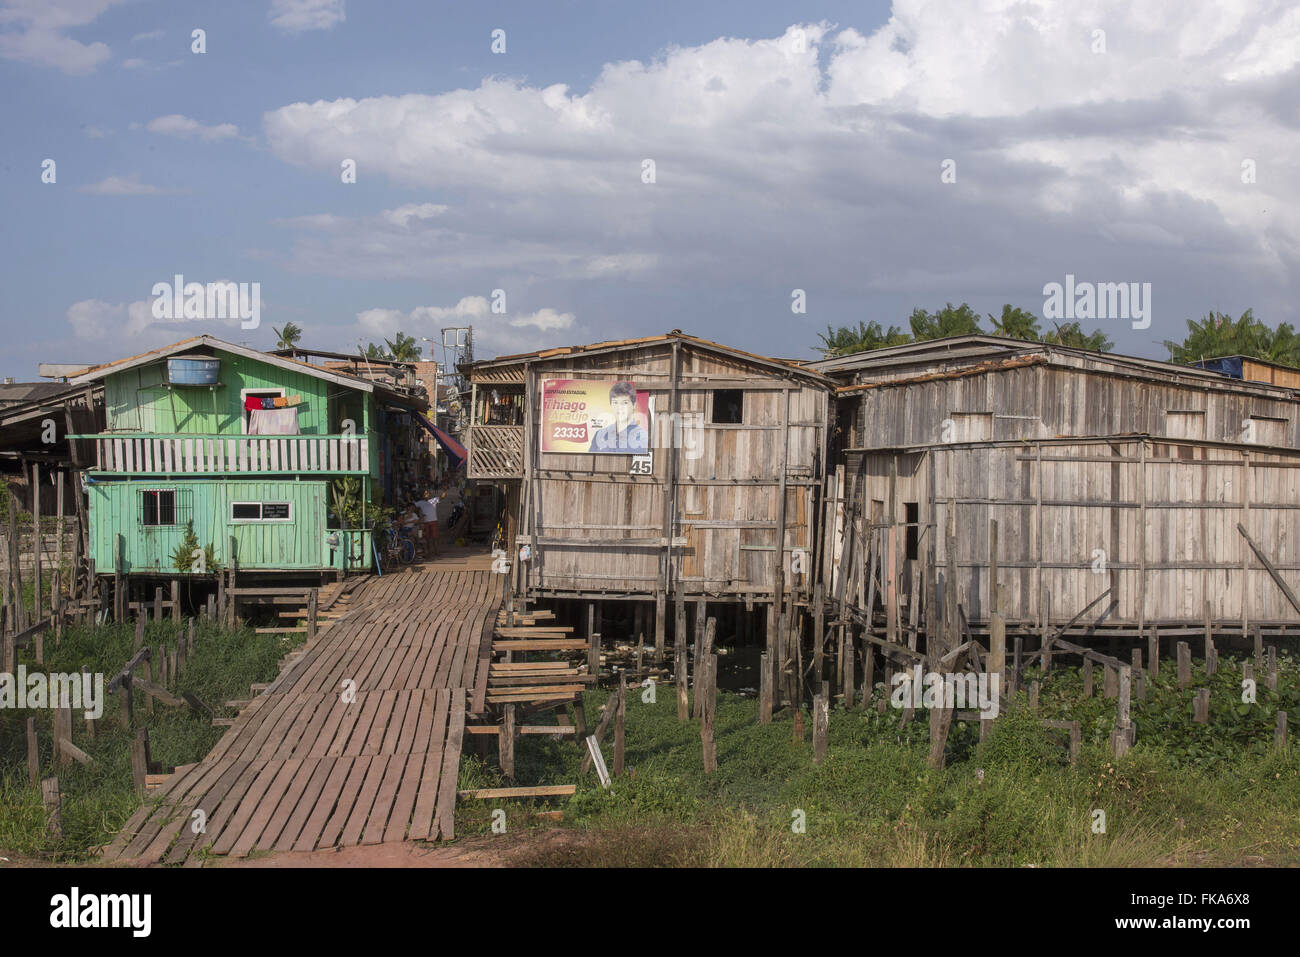 Remaining stilts Village Luzia after the urbanization of Range River waterfront - Stock Image